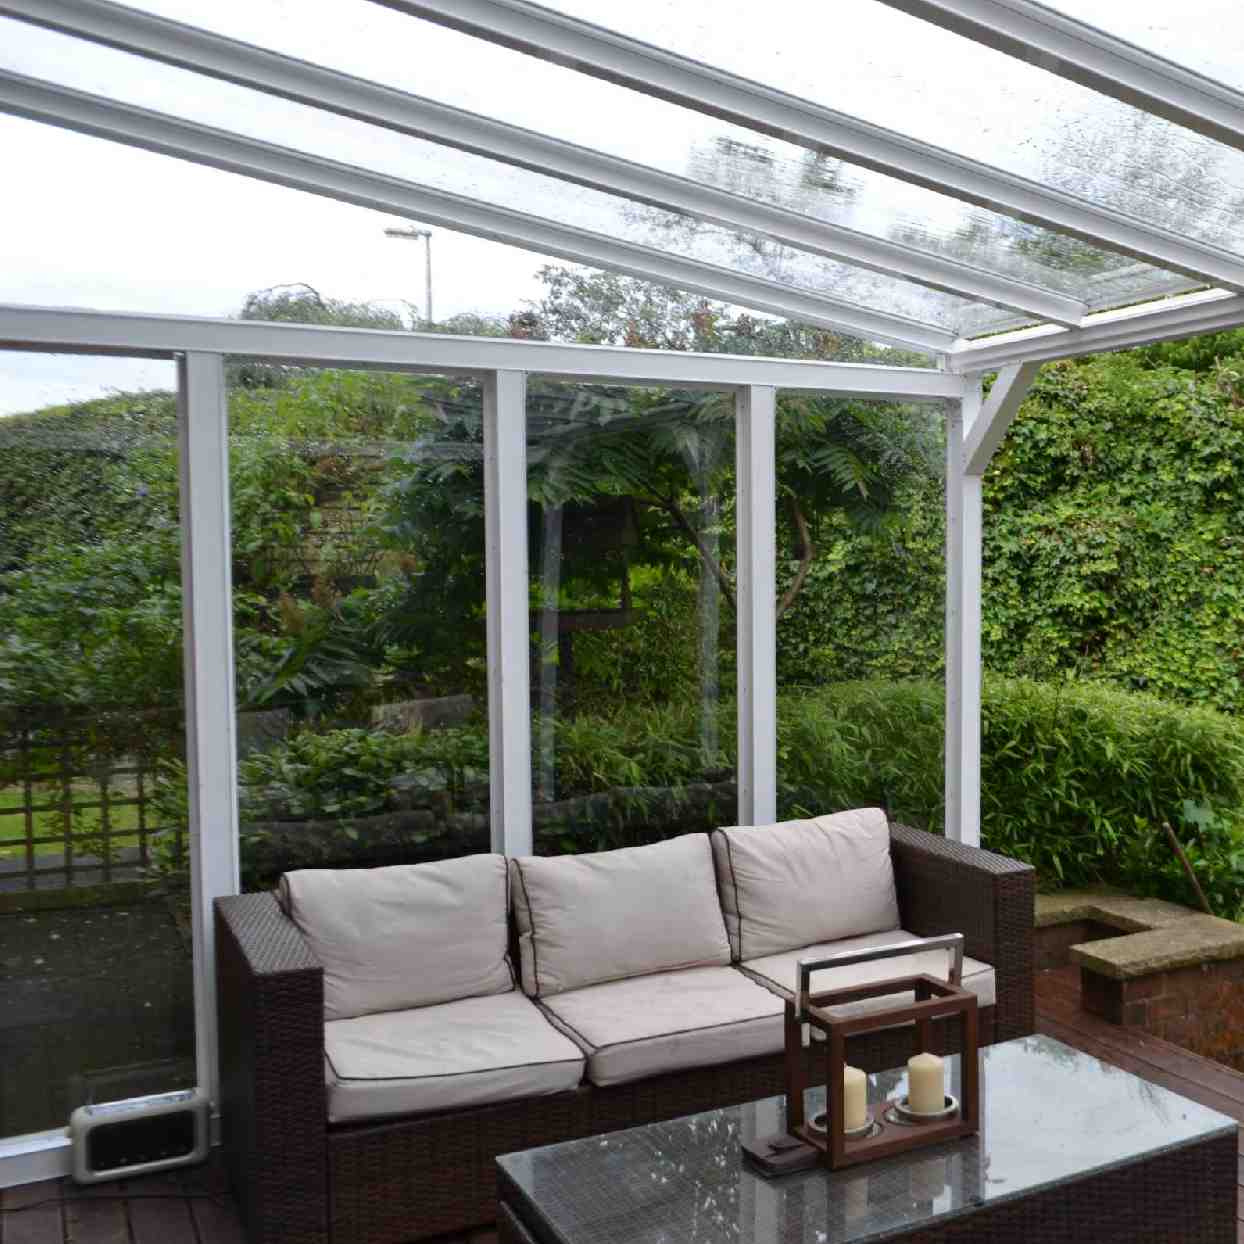 Buy Omega Verandah with 6mm Glass Clear Plate Polycarbonate Glazing - 2.1m (W) x 2.5m (P), (2) Supporting Posts online today